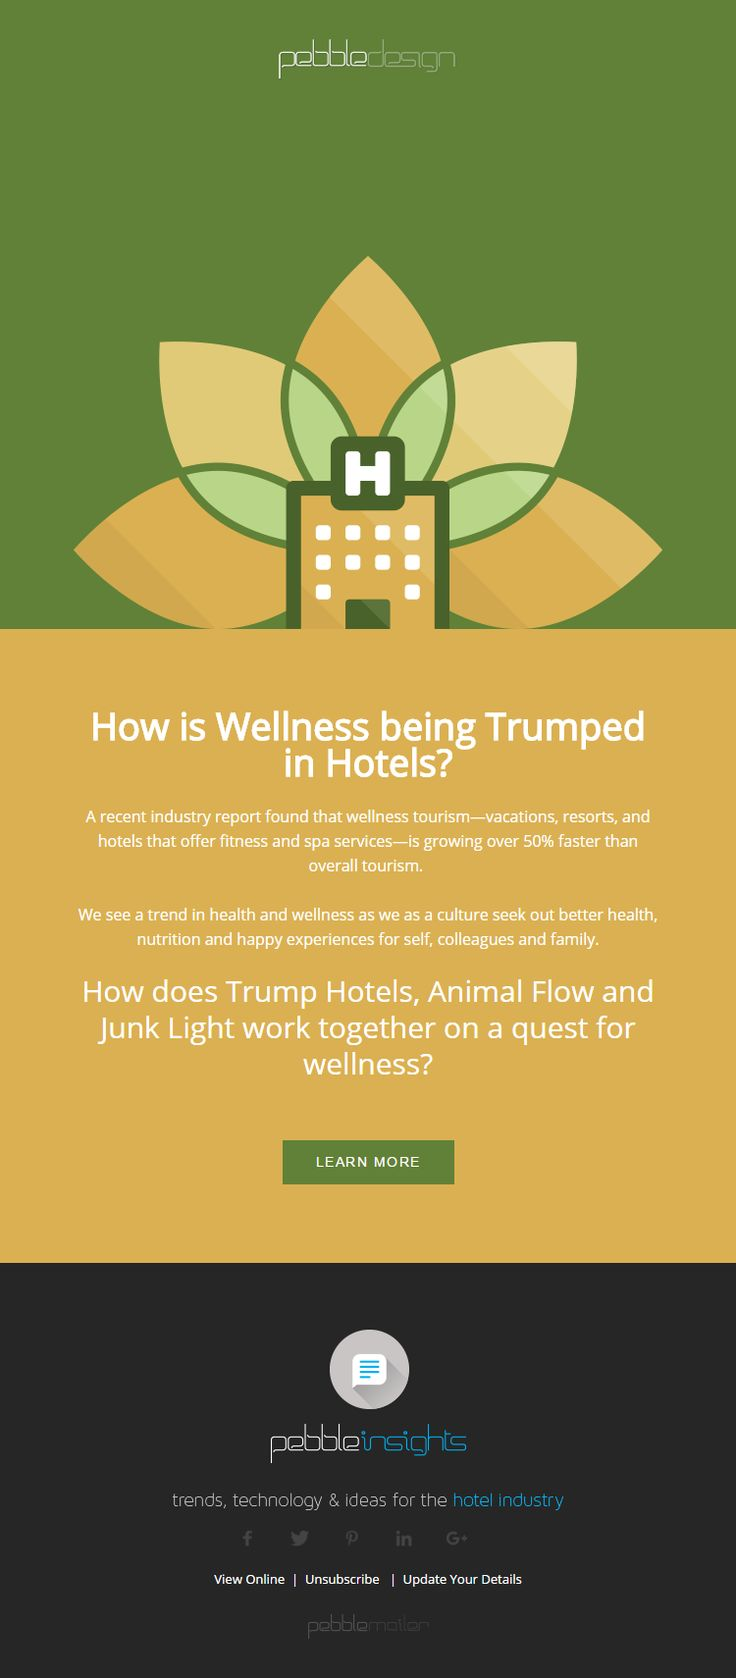 How is Wellness being Trumped in Hotels? - Hospitality Insights #hospitalityinsights #hotelwebdesign #hotelwebsitedesign #pebbledesign #hotelwebsites